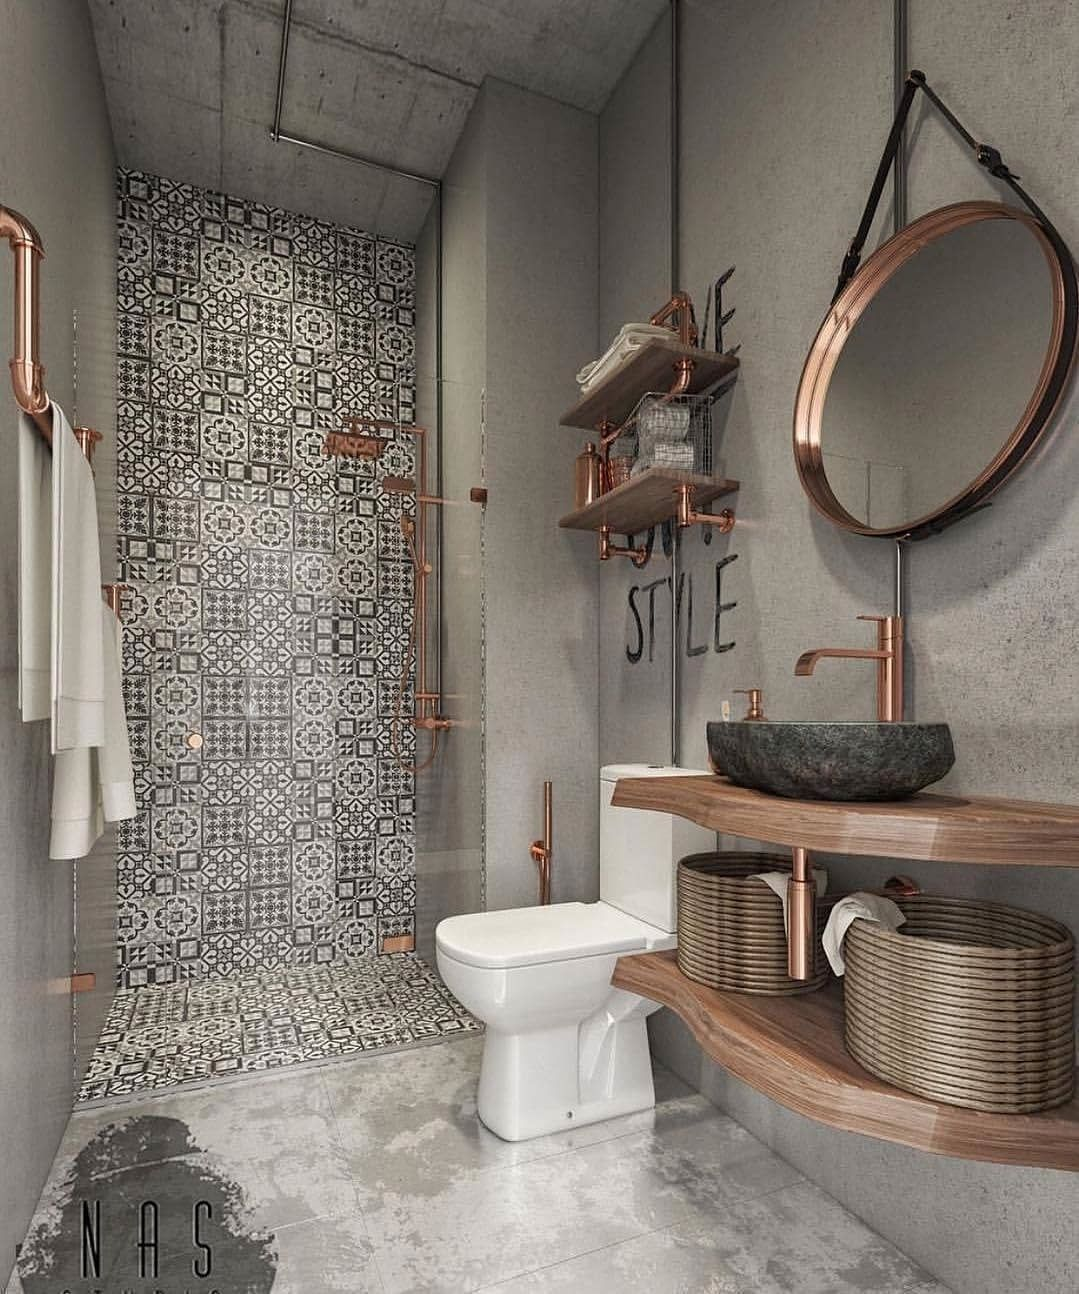 Steampunk Bathroom By Nas Studio Credit Homeadore Homedecorations Hometime Homecare H Badezimmer Inspiration Kleine Badezimmer Badezimmer Gestalten